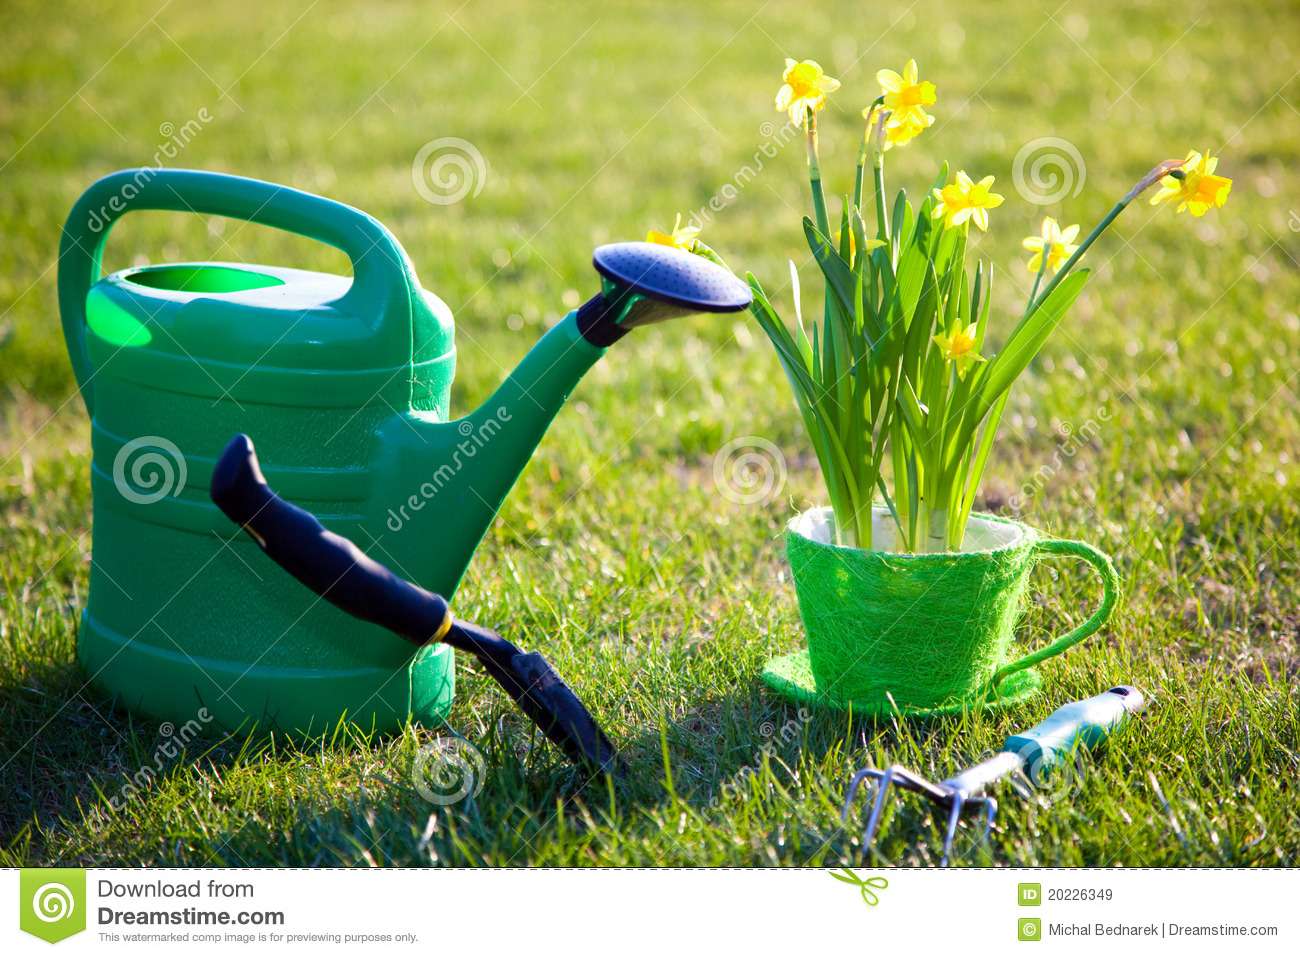 Gardening tools and flowers royalty free stock images for Gardening tools watering